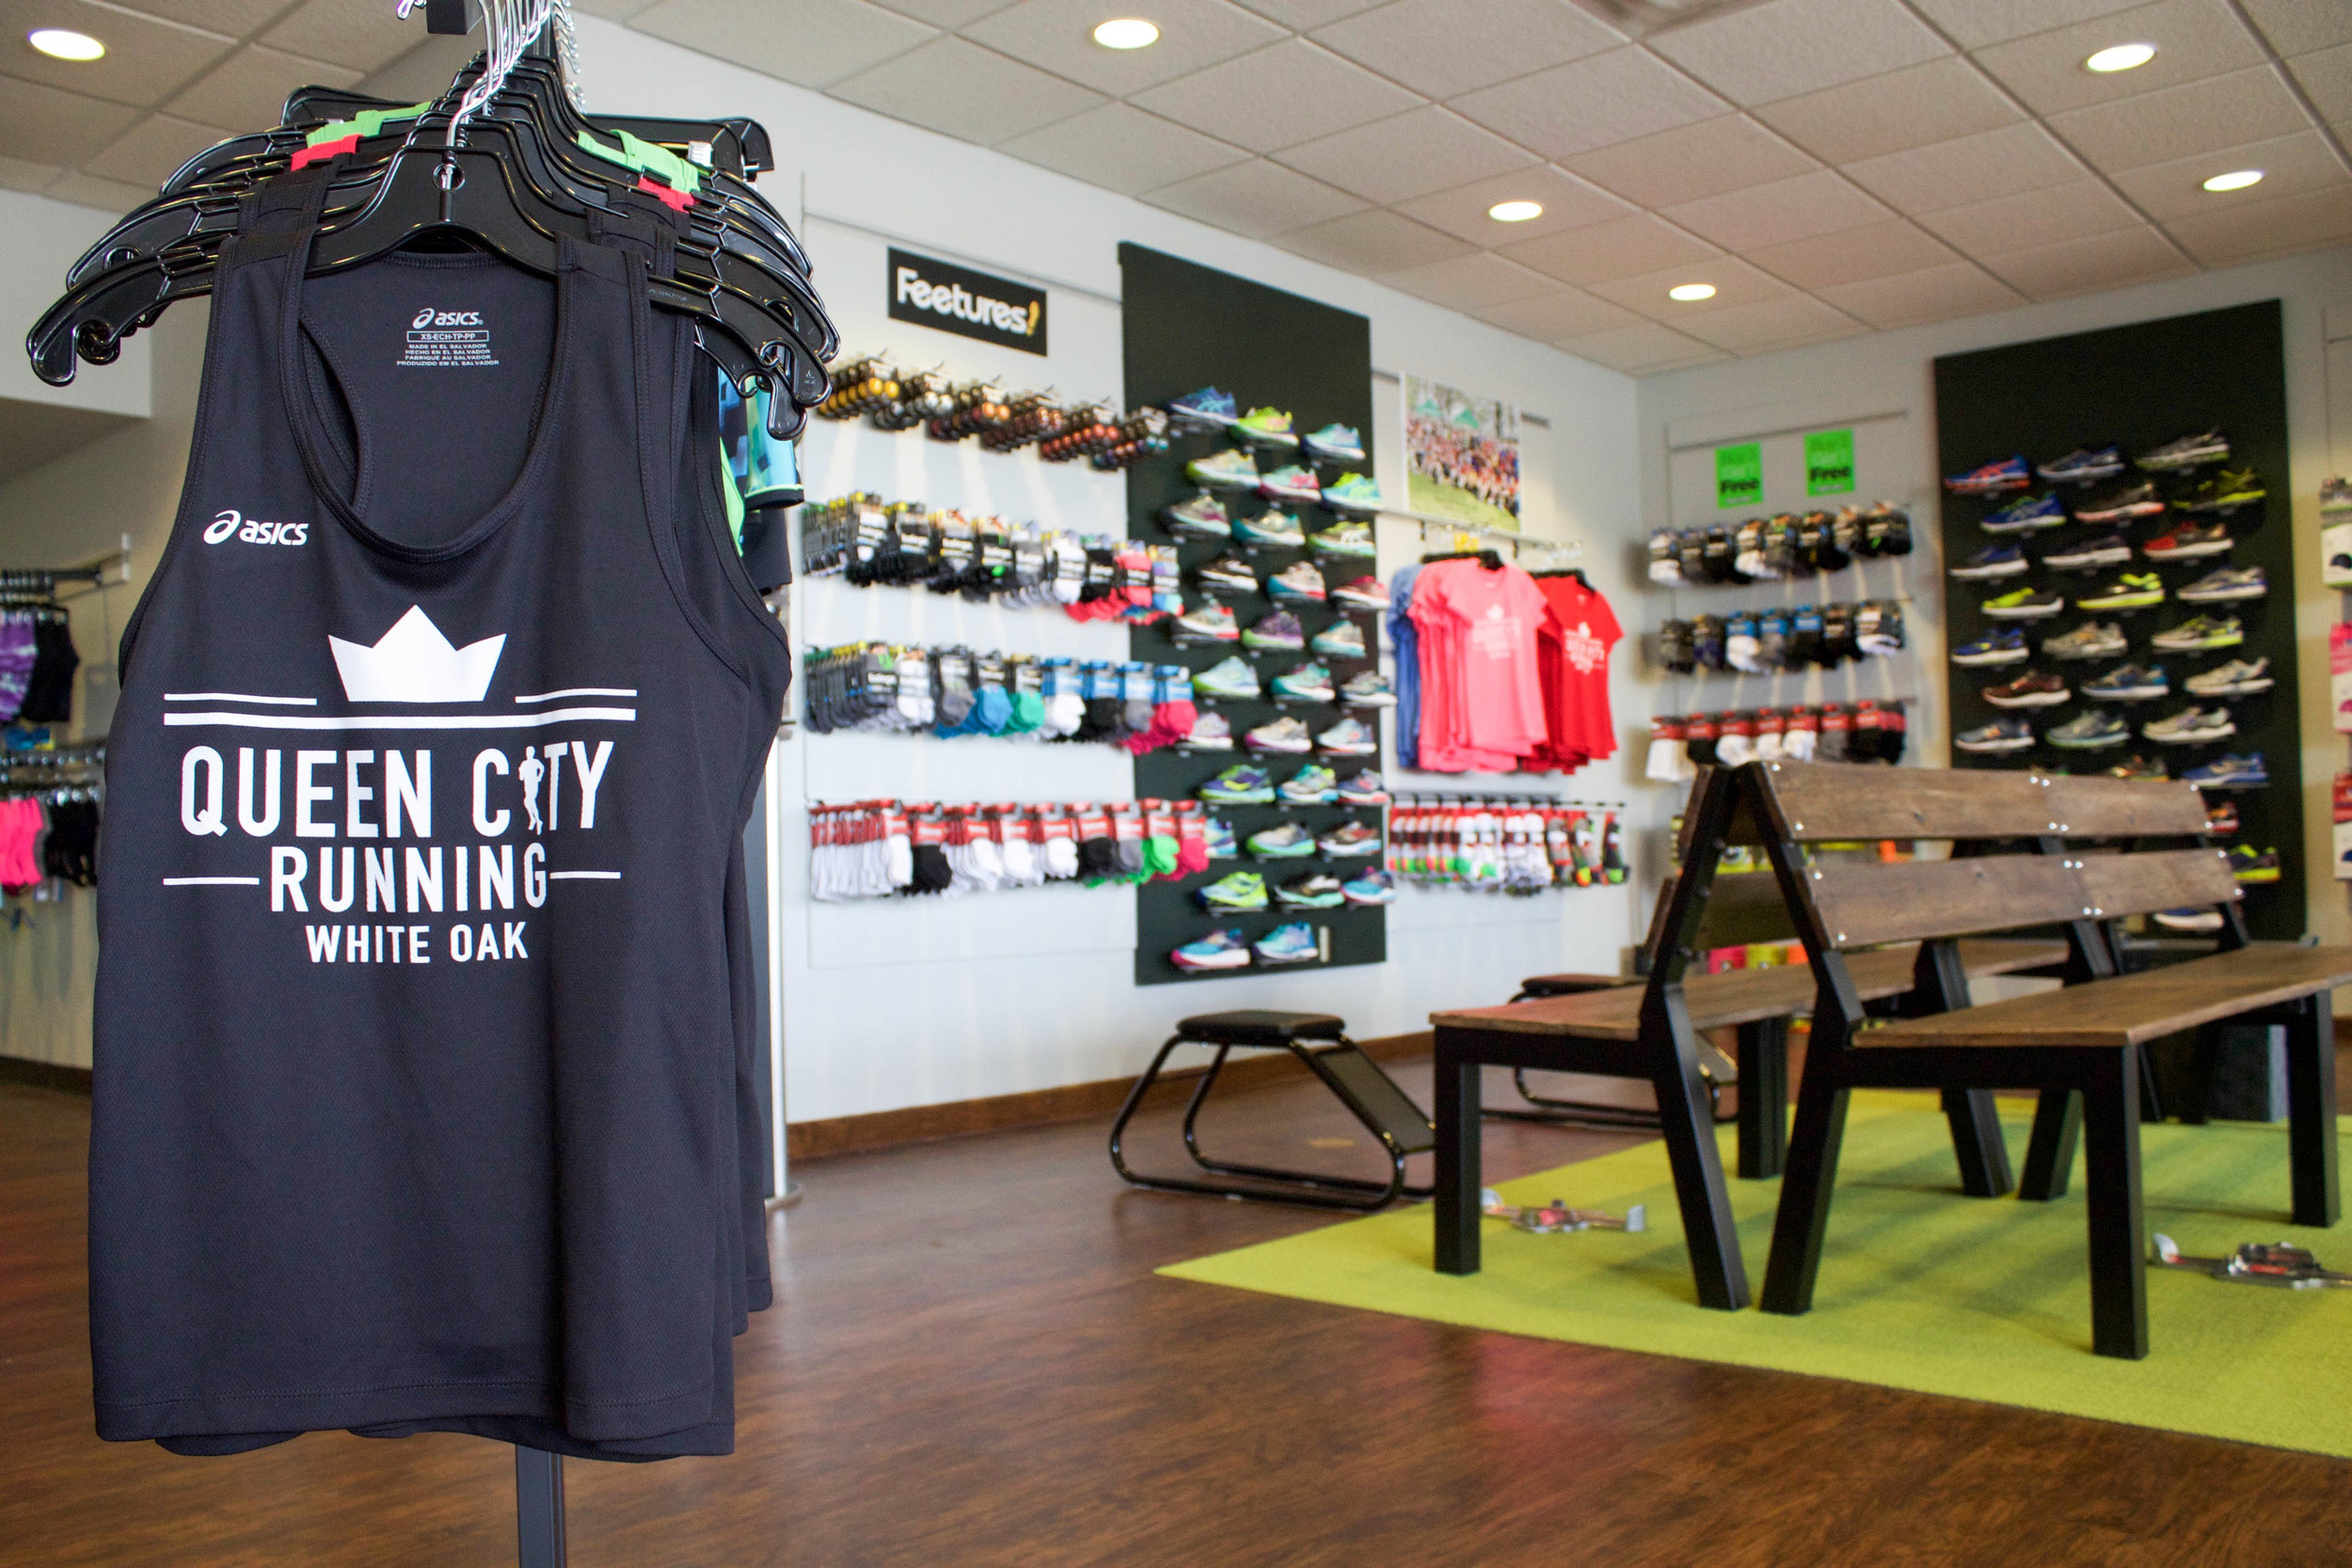 We have a large hand-curated selection of running and walking shoes, athletic apparel, equipment, and accessories.